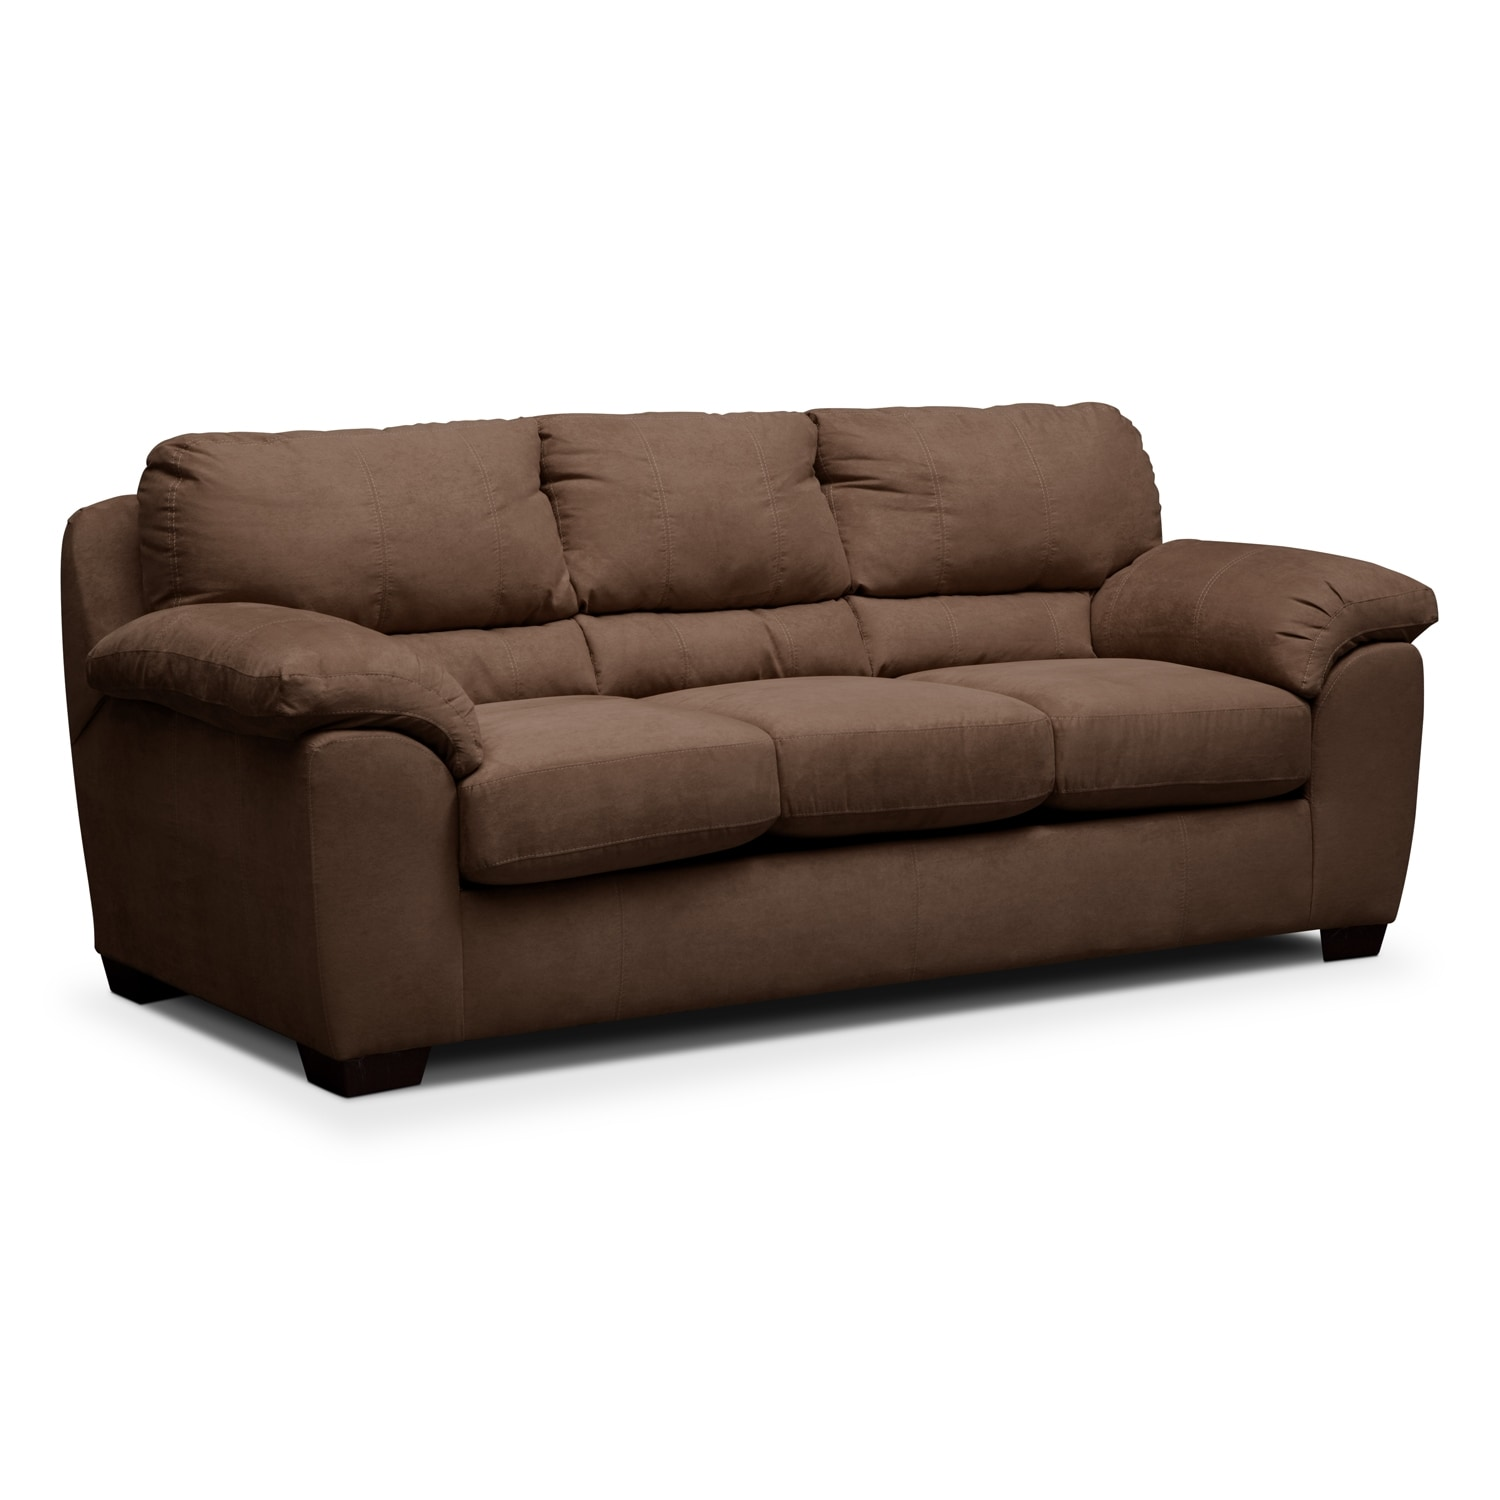 american signature furniture colton iv upholstery queen sleeper sofa